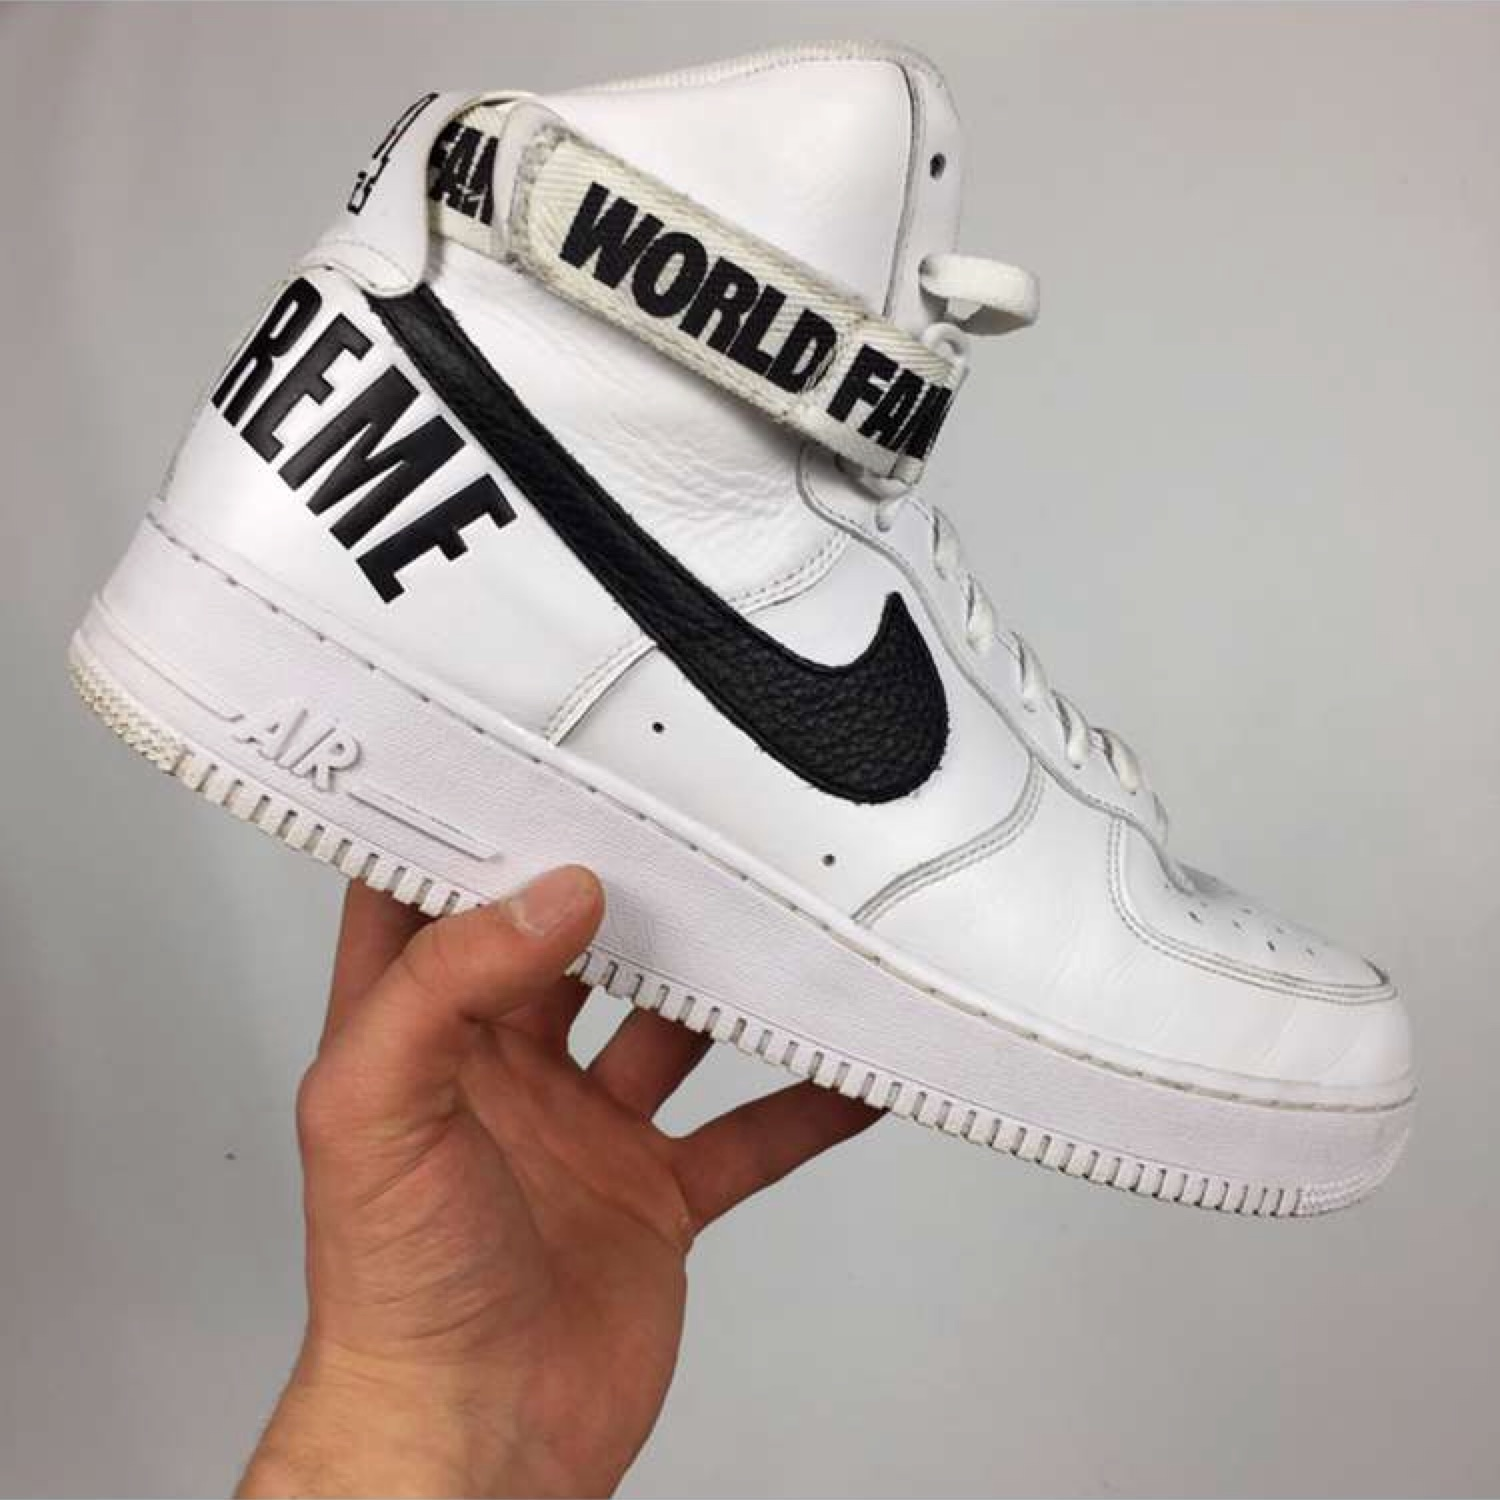 Supreme World Famous Air Force